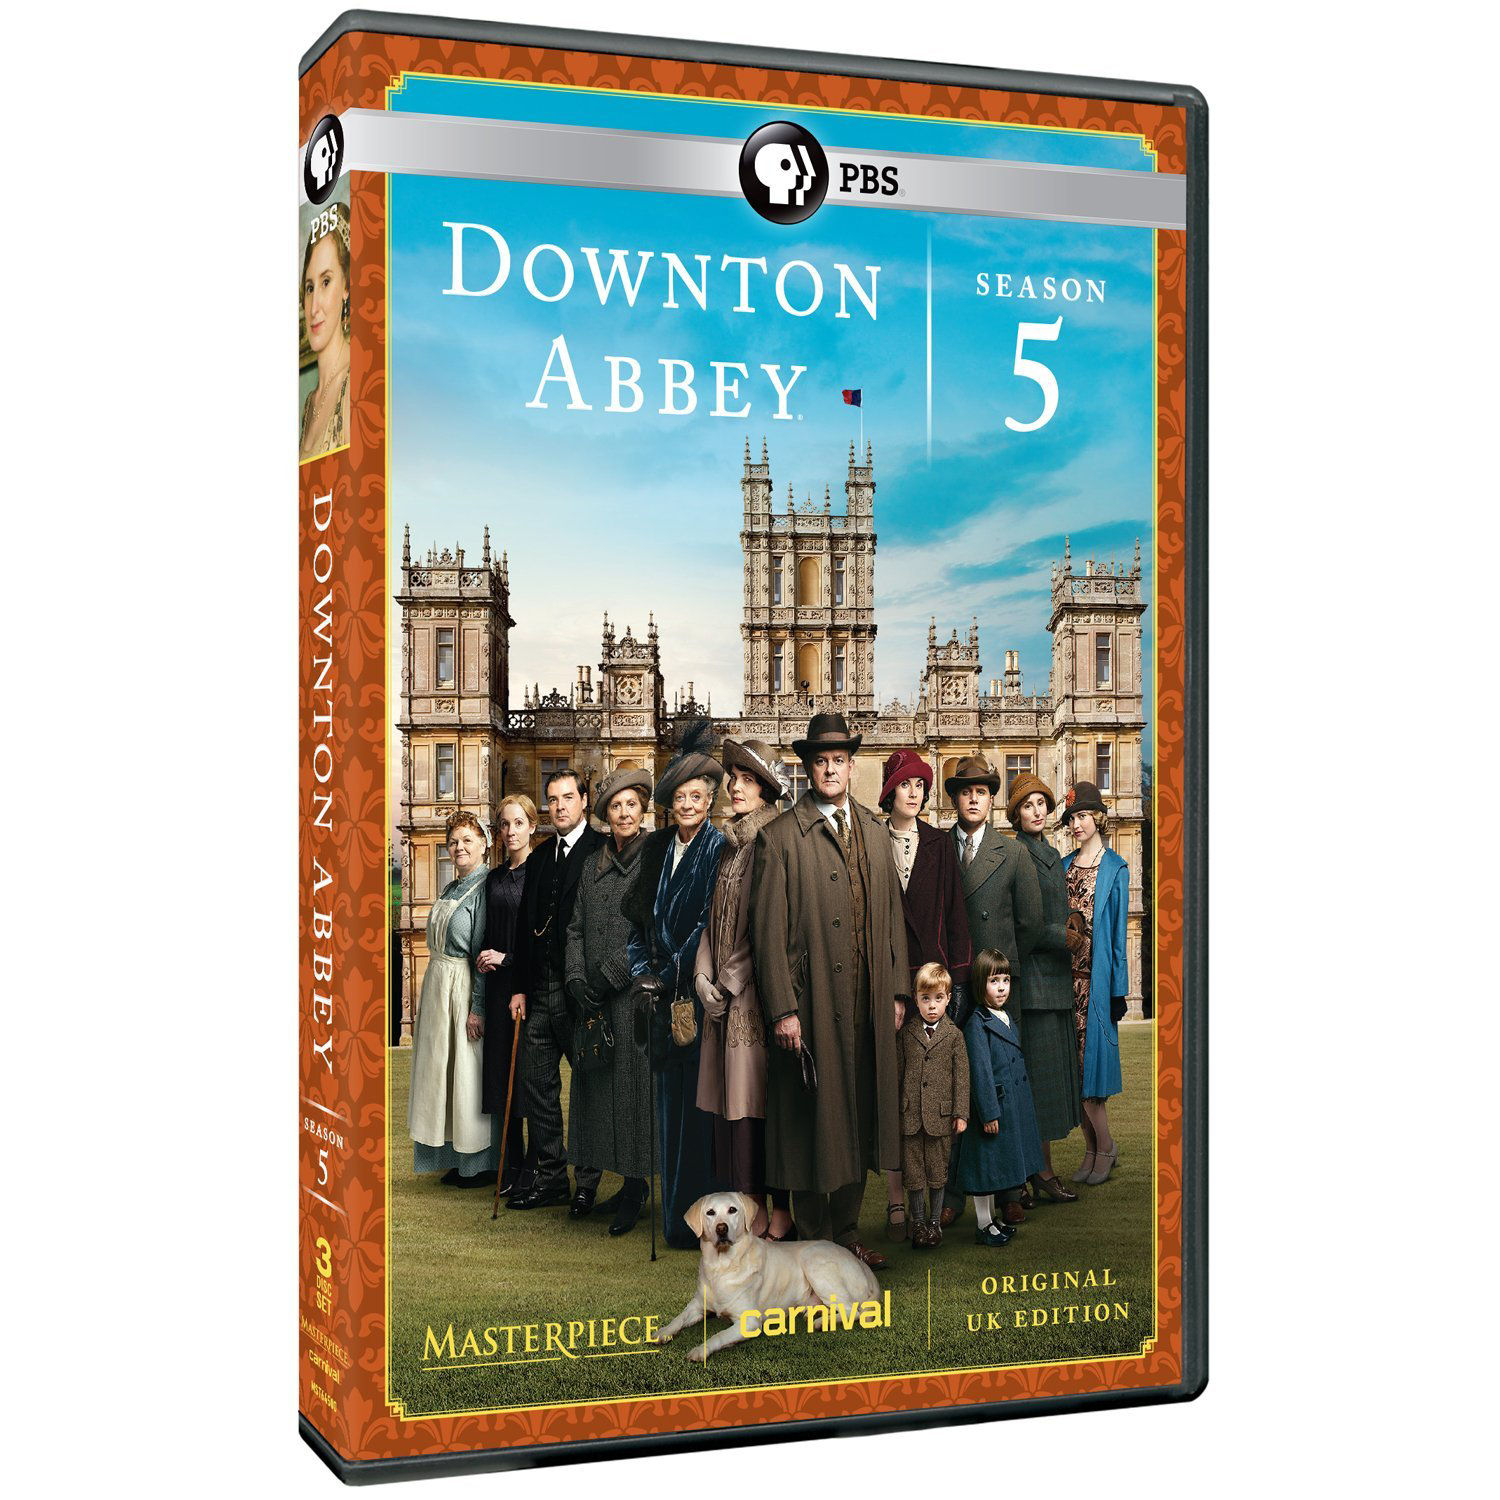 Video case for Downton Abbey season 5